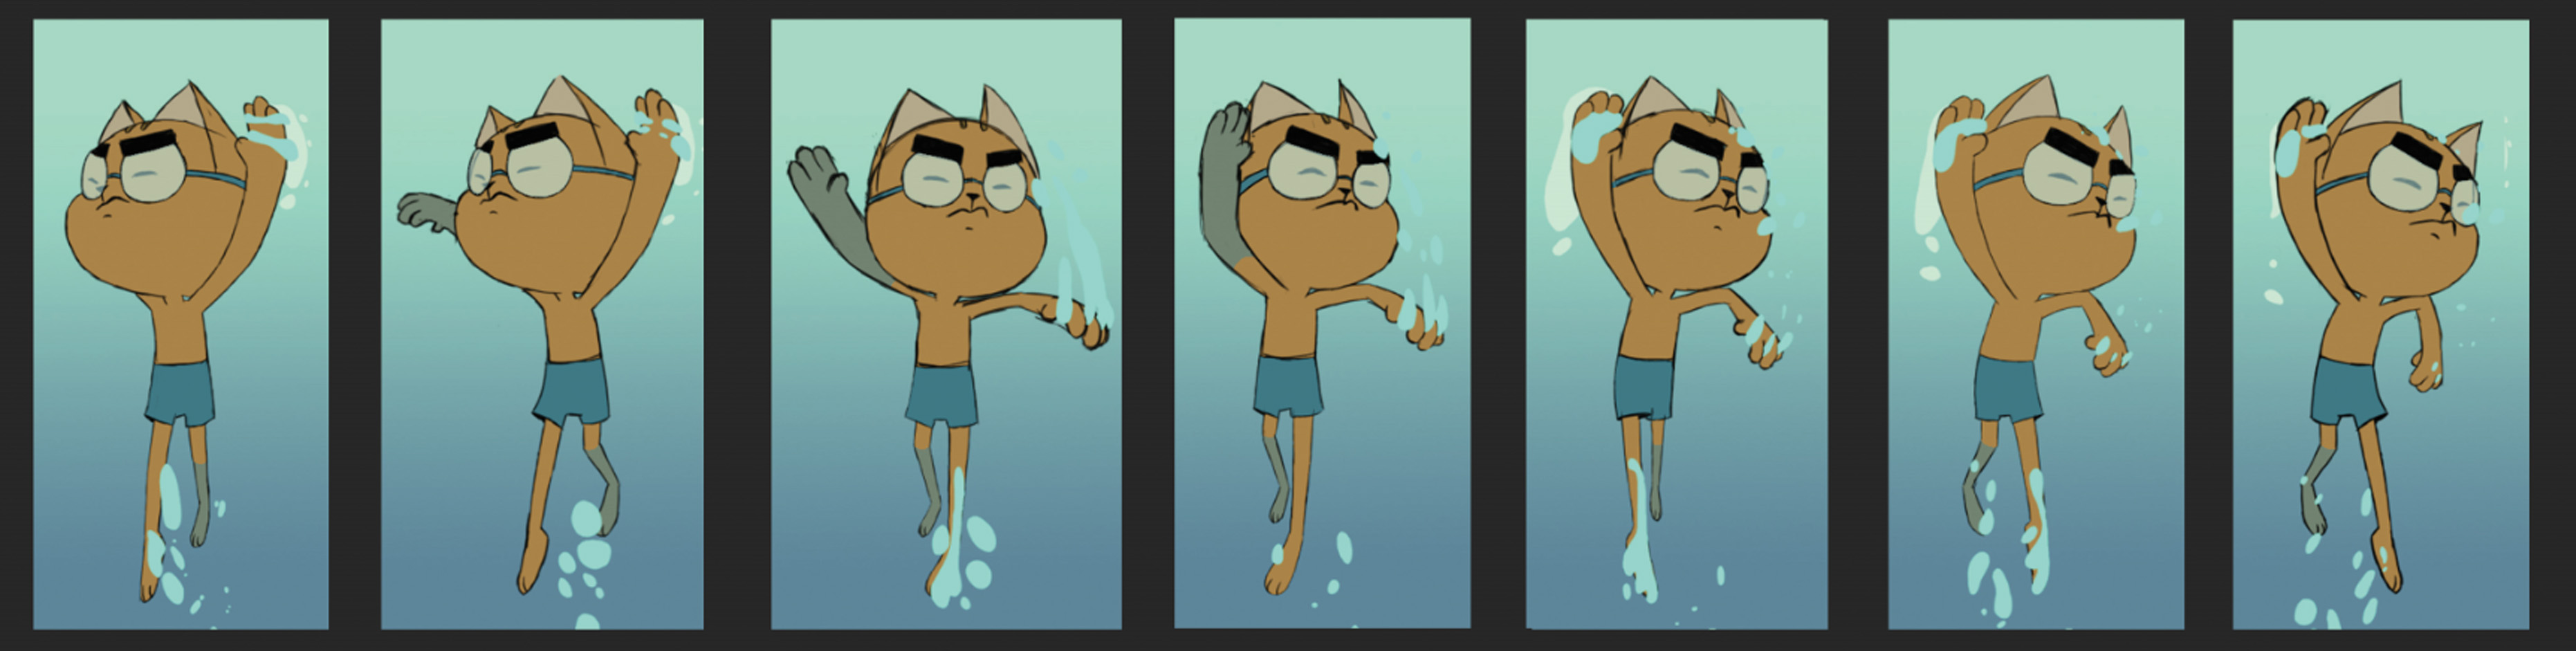 <p>'Cats can't swim' animation sequence</p>